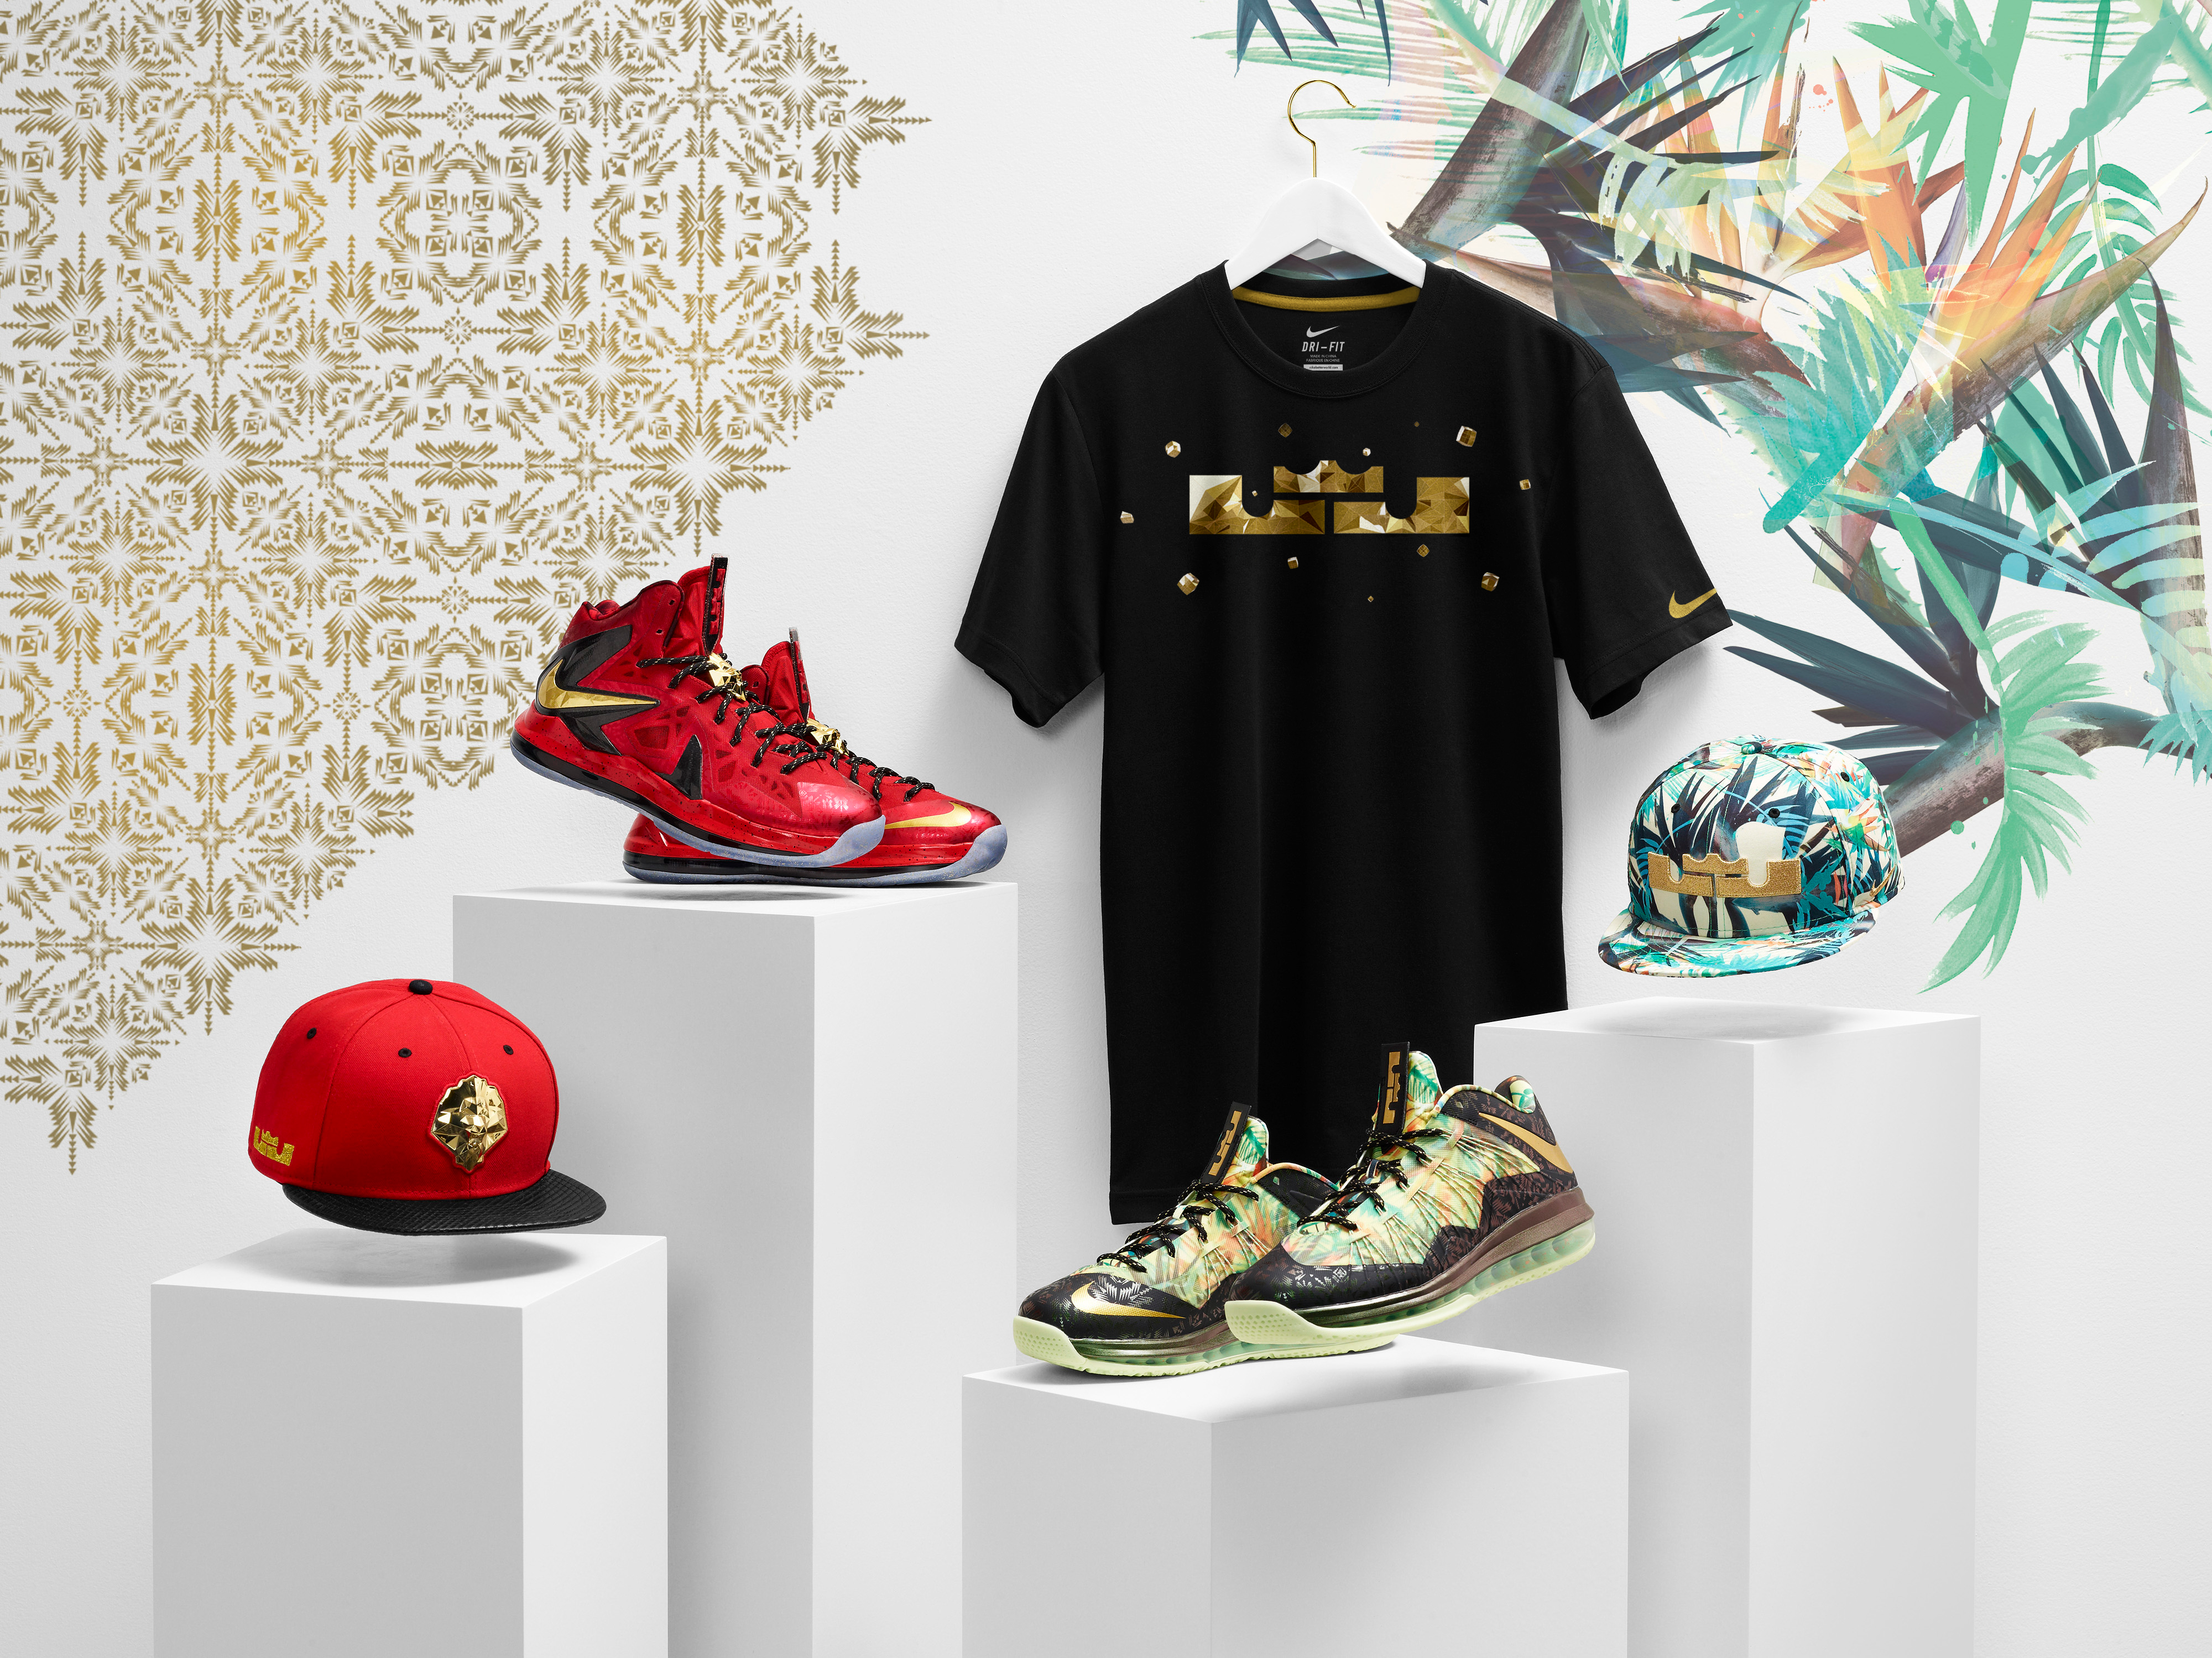 Lebron - Crown Diamond Collection Campaign